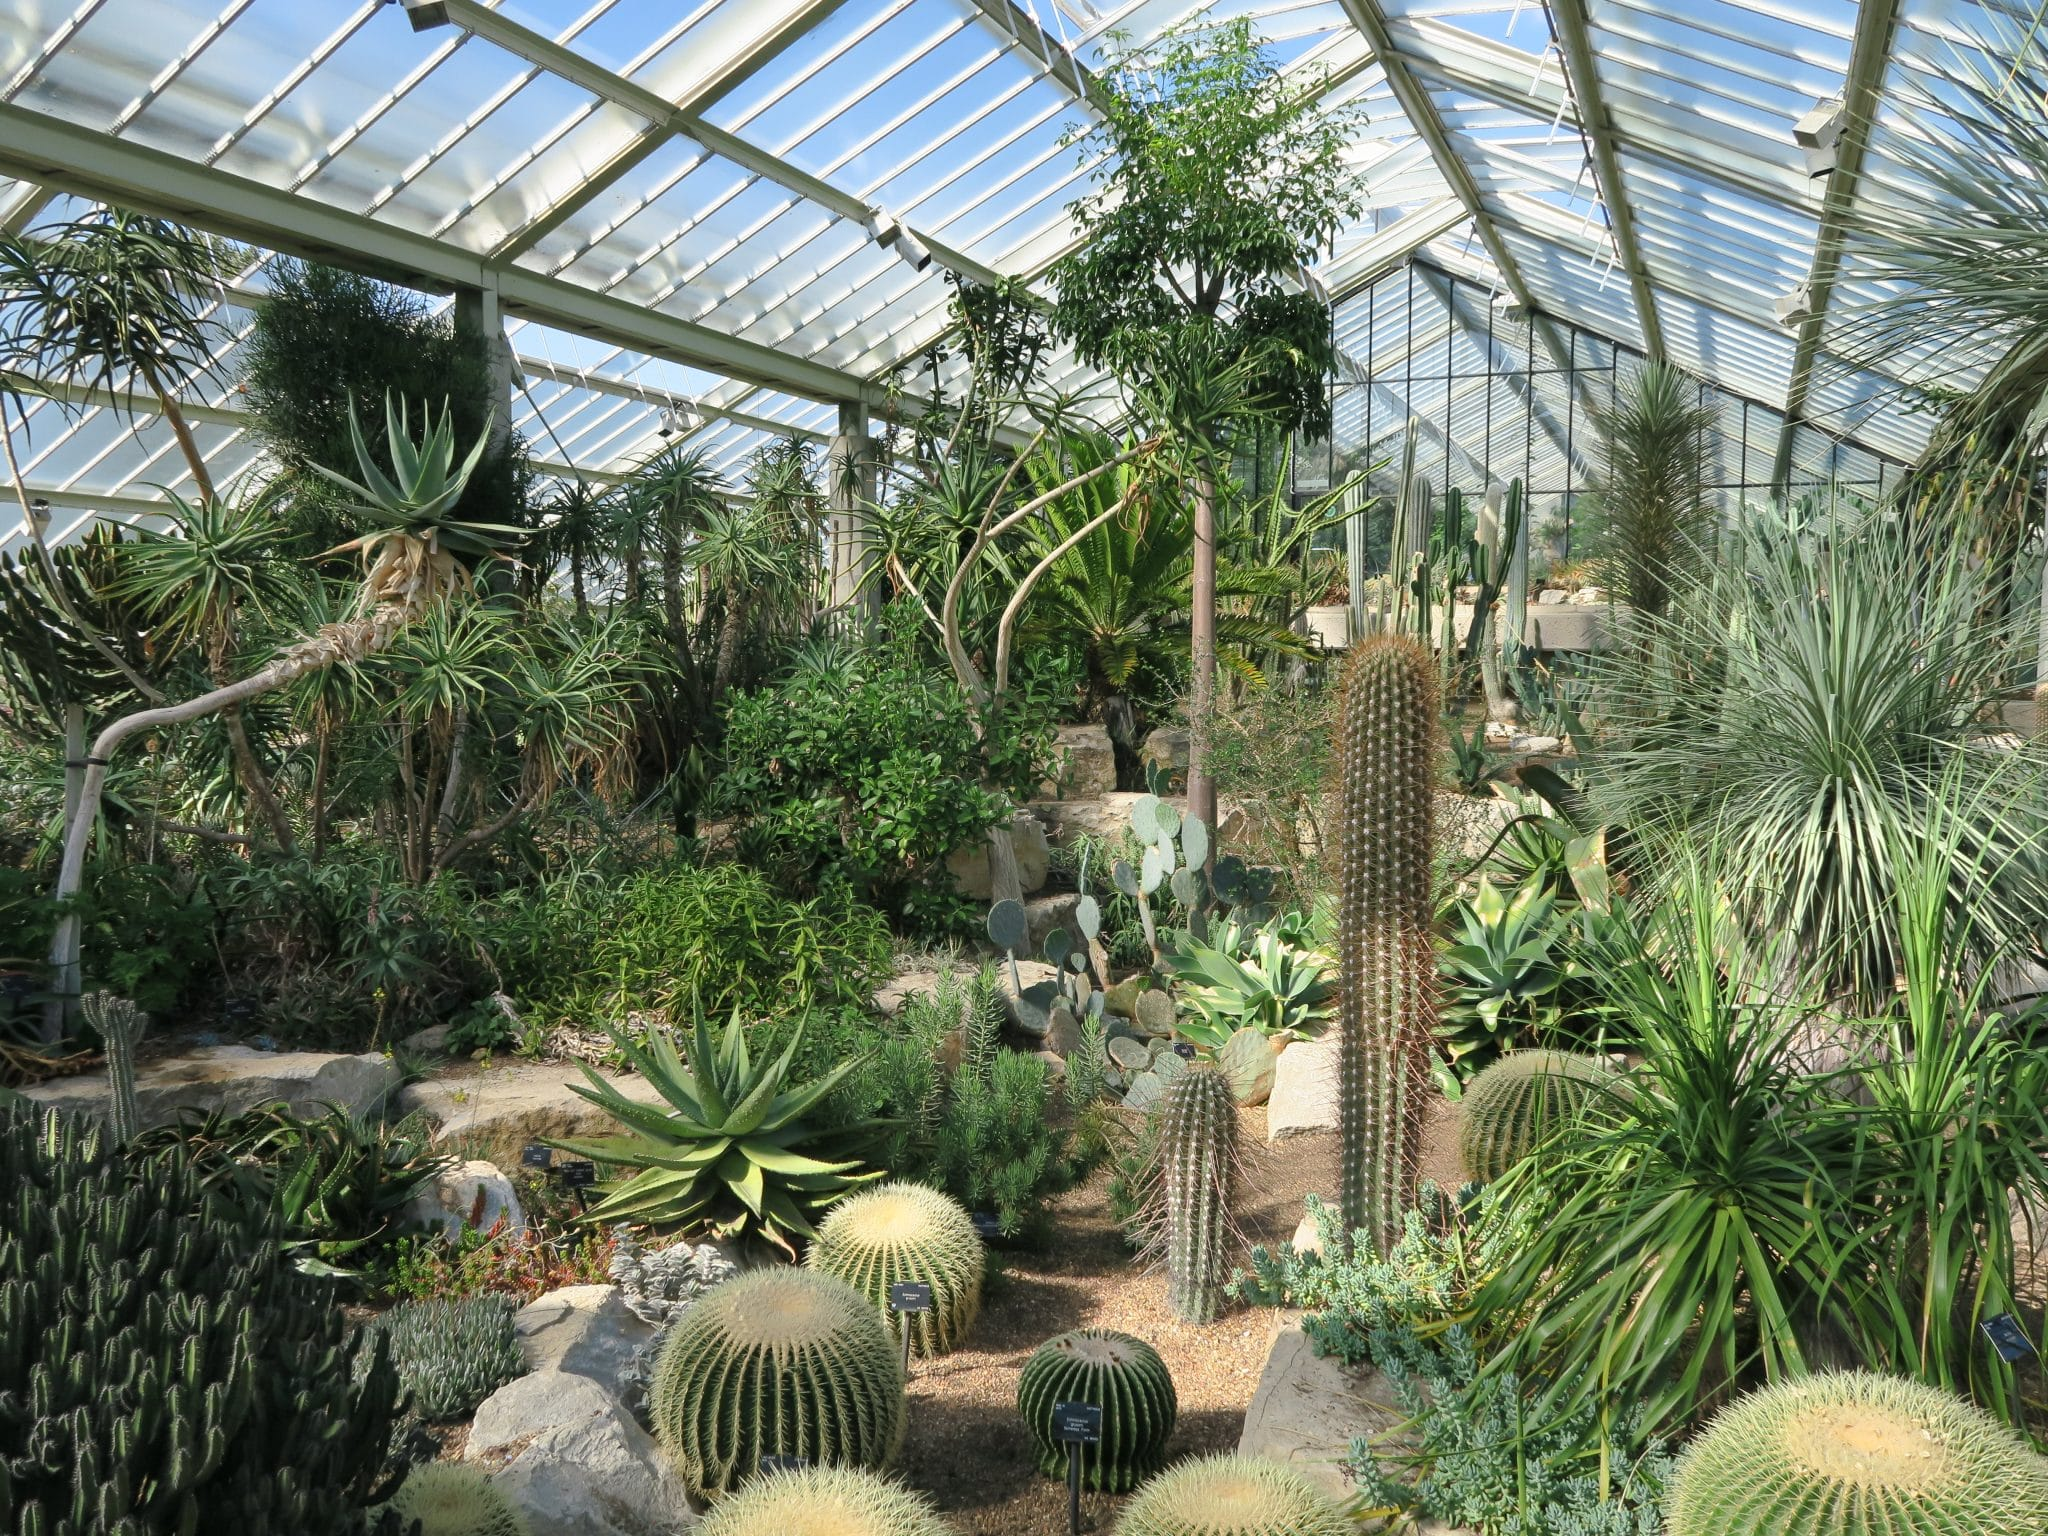 One Of The Major Days During My Week Off In London During The Summer Was To Kew  Gardens. As A New Londoner, I Really Want To Get To Know The City Better,  ...